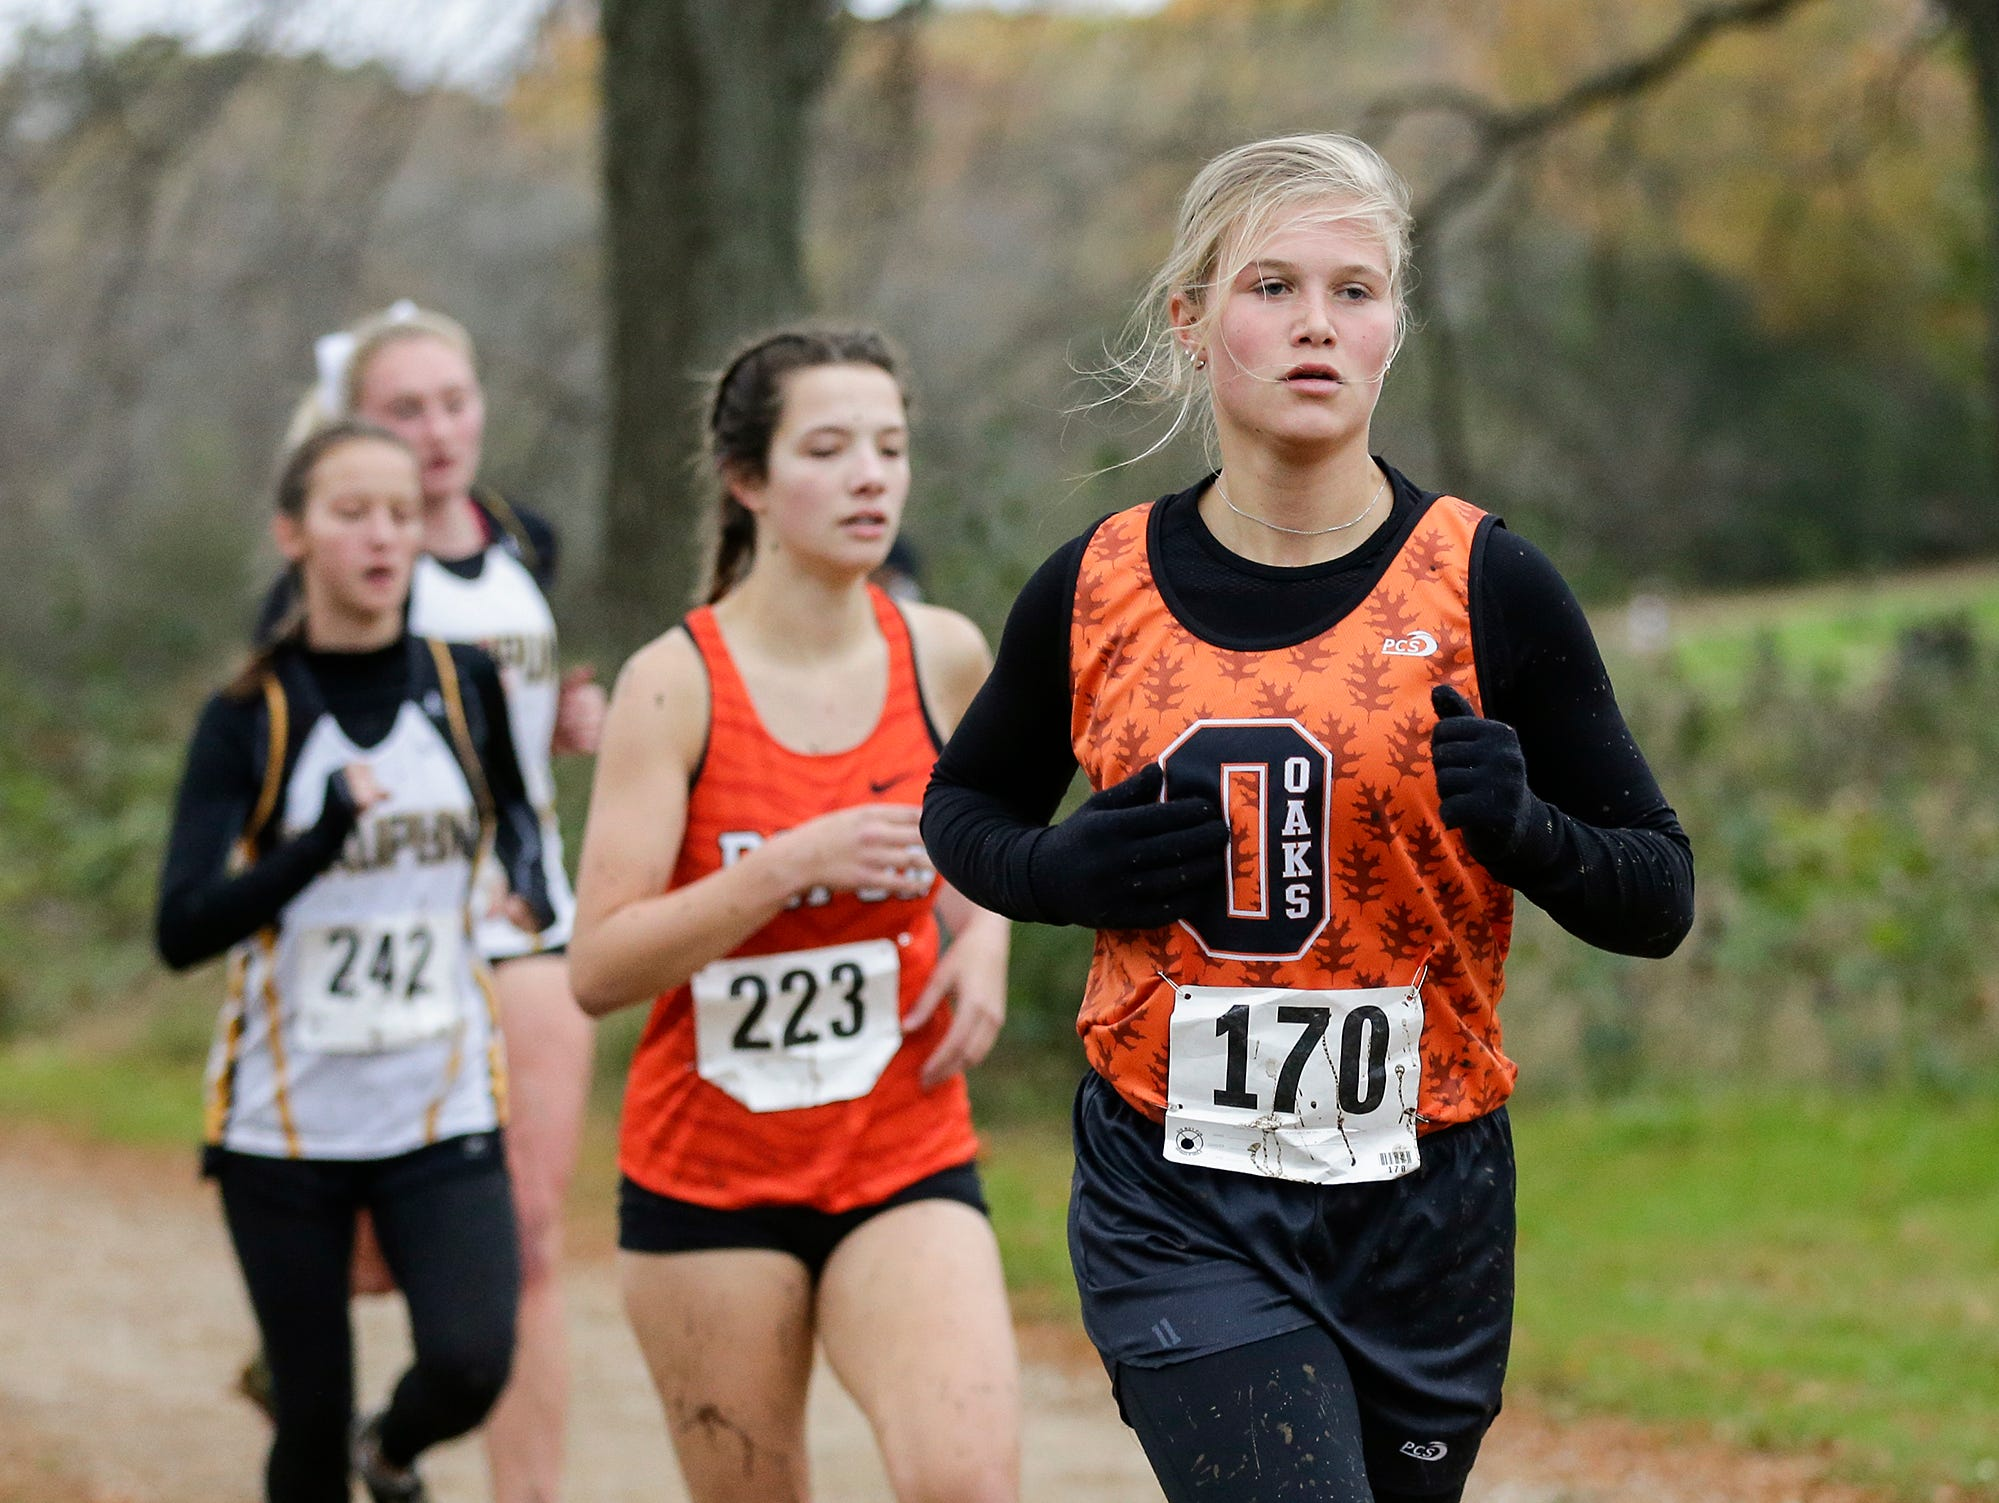 North Fond du Lac High School's Marie-Julie Huber runs in the WIAA Division two Mayville sectional cross country meet at the Mayville golf course Friday, October 19, 2018. Doug Raflik/USA TODAY NETWORK-Wisconsin